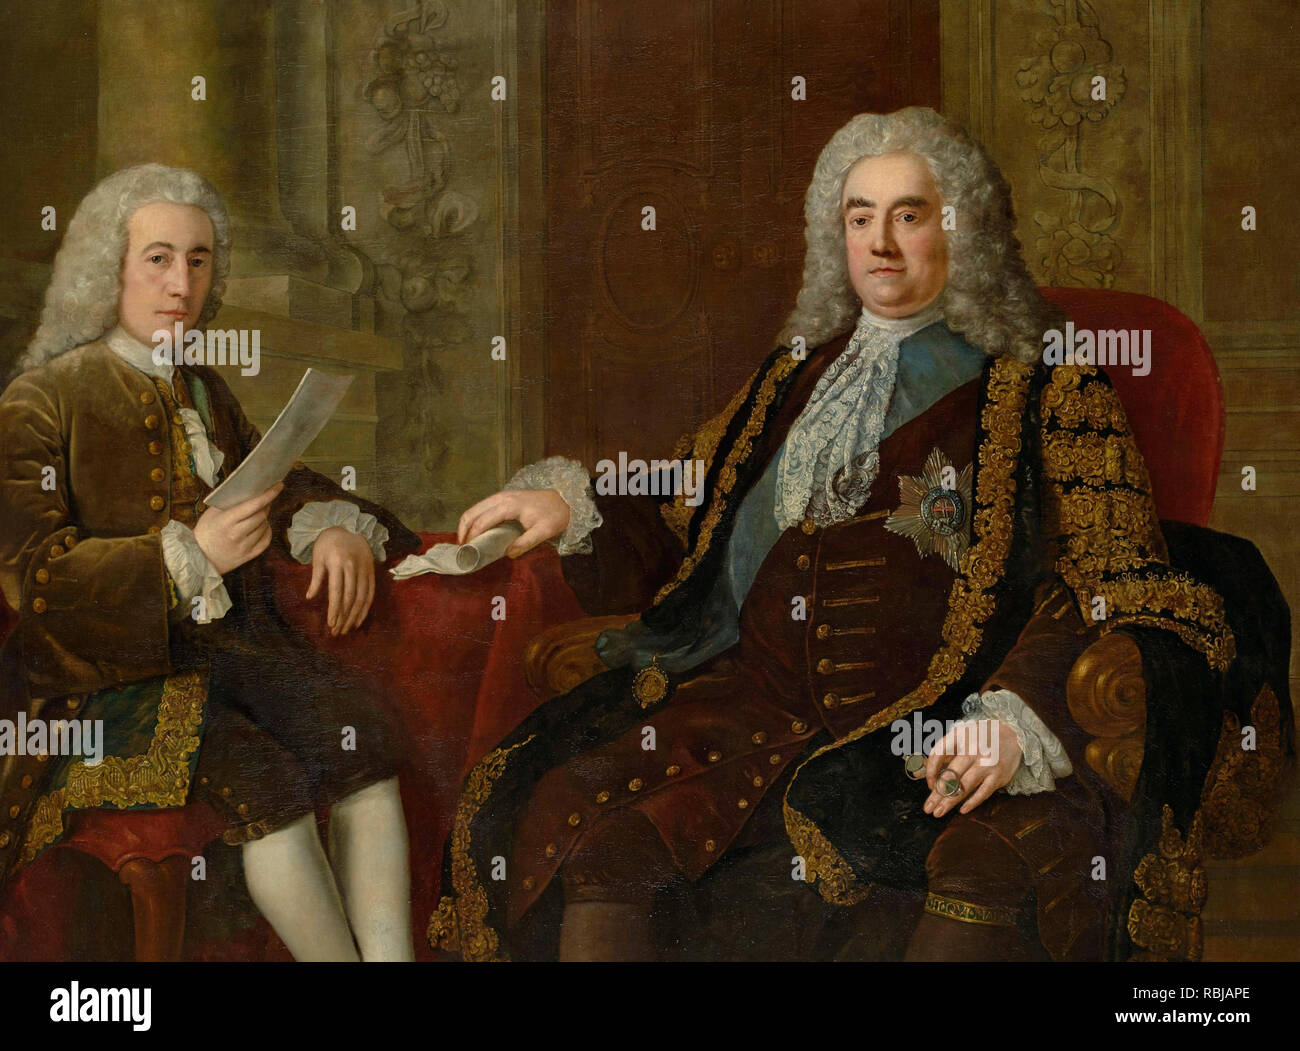 Portrait of Robert Walpole, 1st Earl of Orford, British prime minister (1676-1745) and Portrait of Henry Bilson Legge, British politician (1708-1764) - Stephen Slaughter - Stock Image